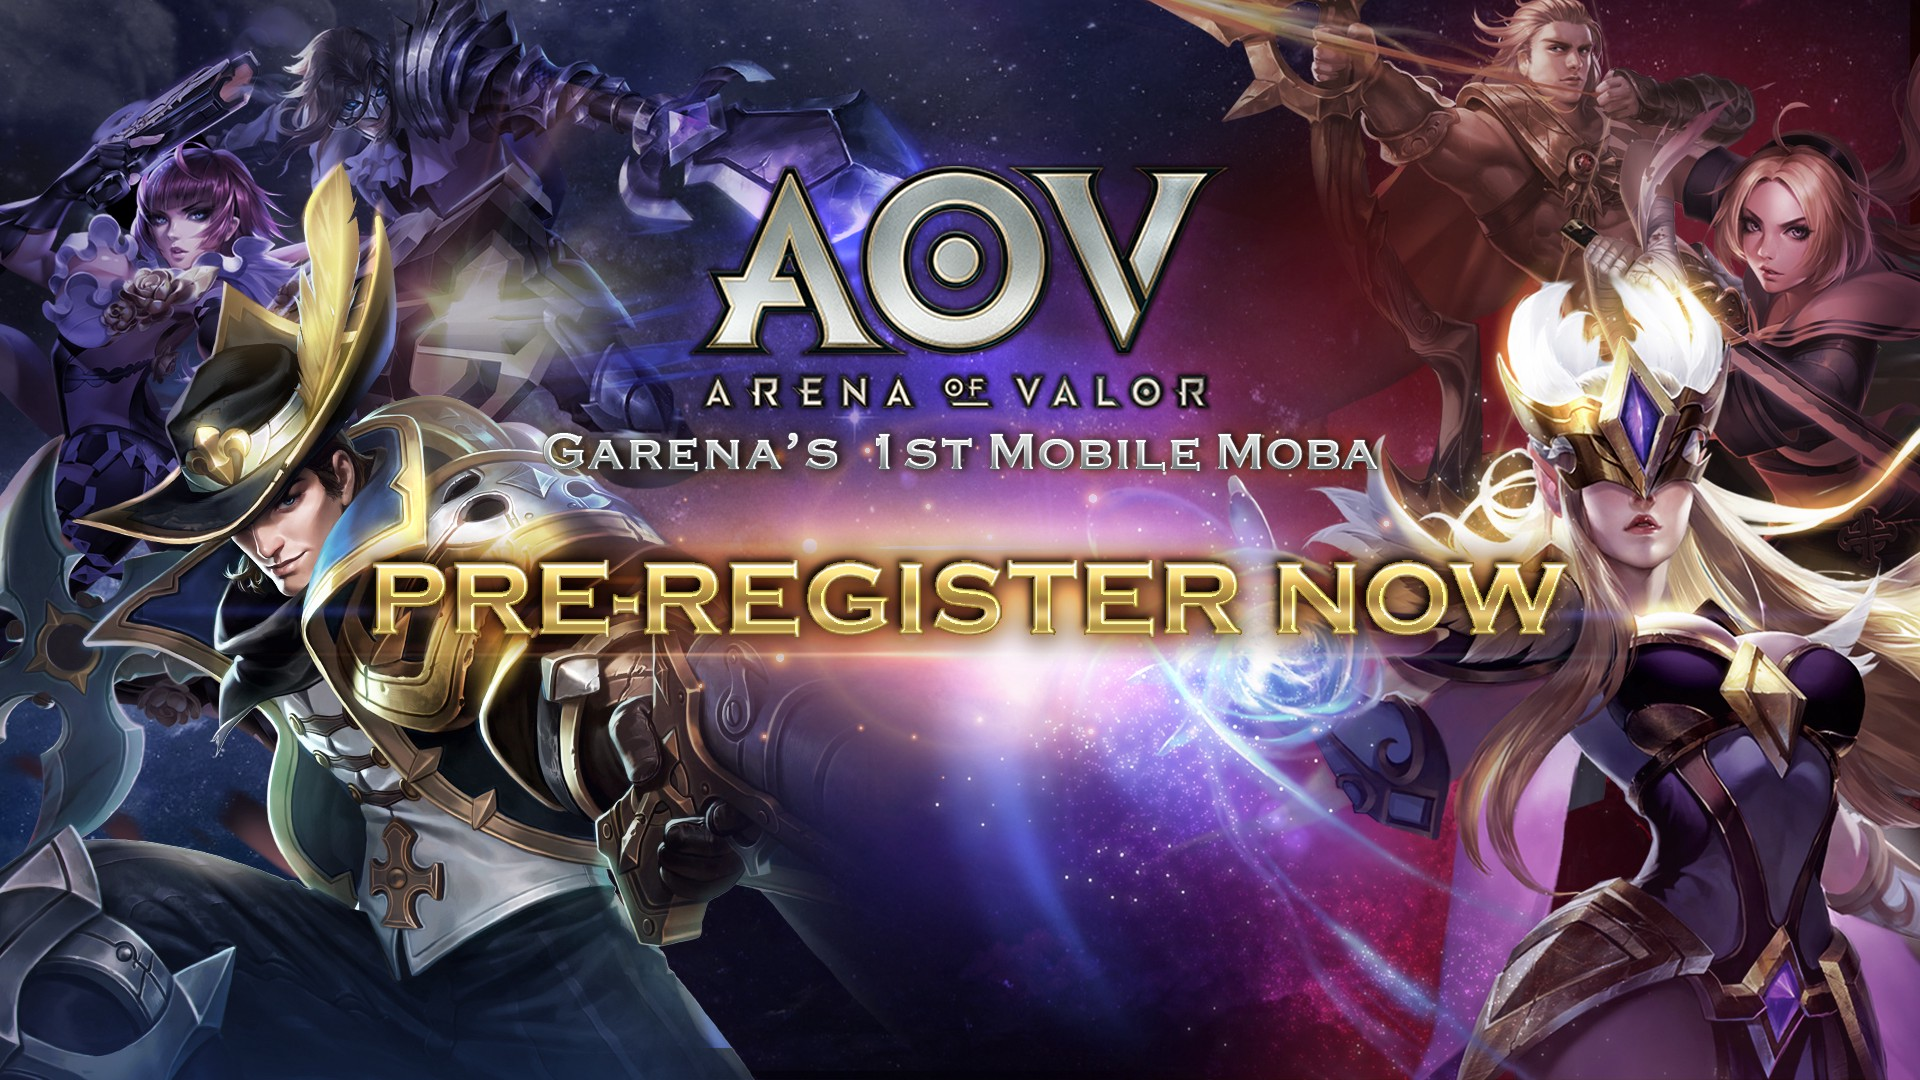 Garenas Arena of Valor MOBA game is coming to Malaysia